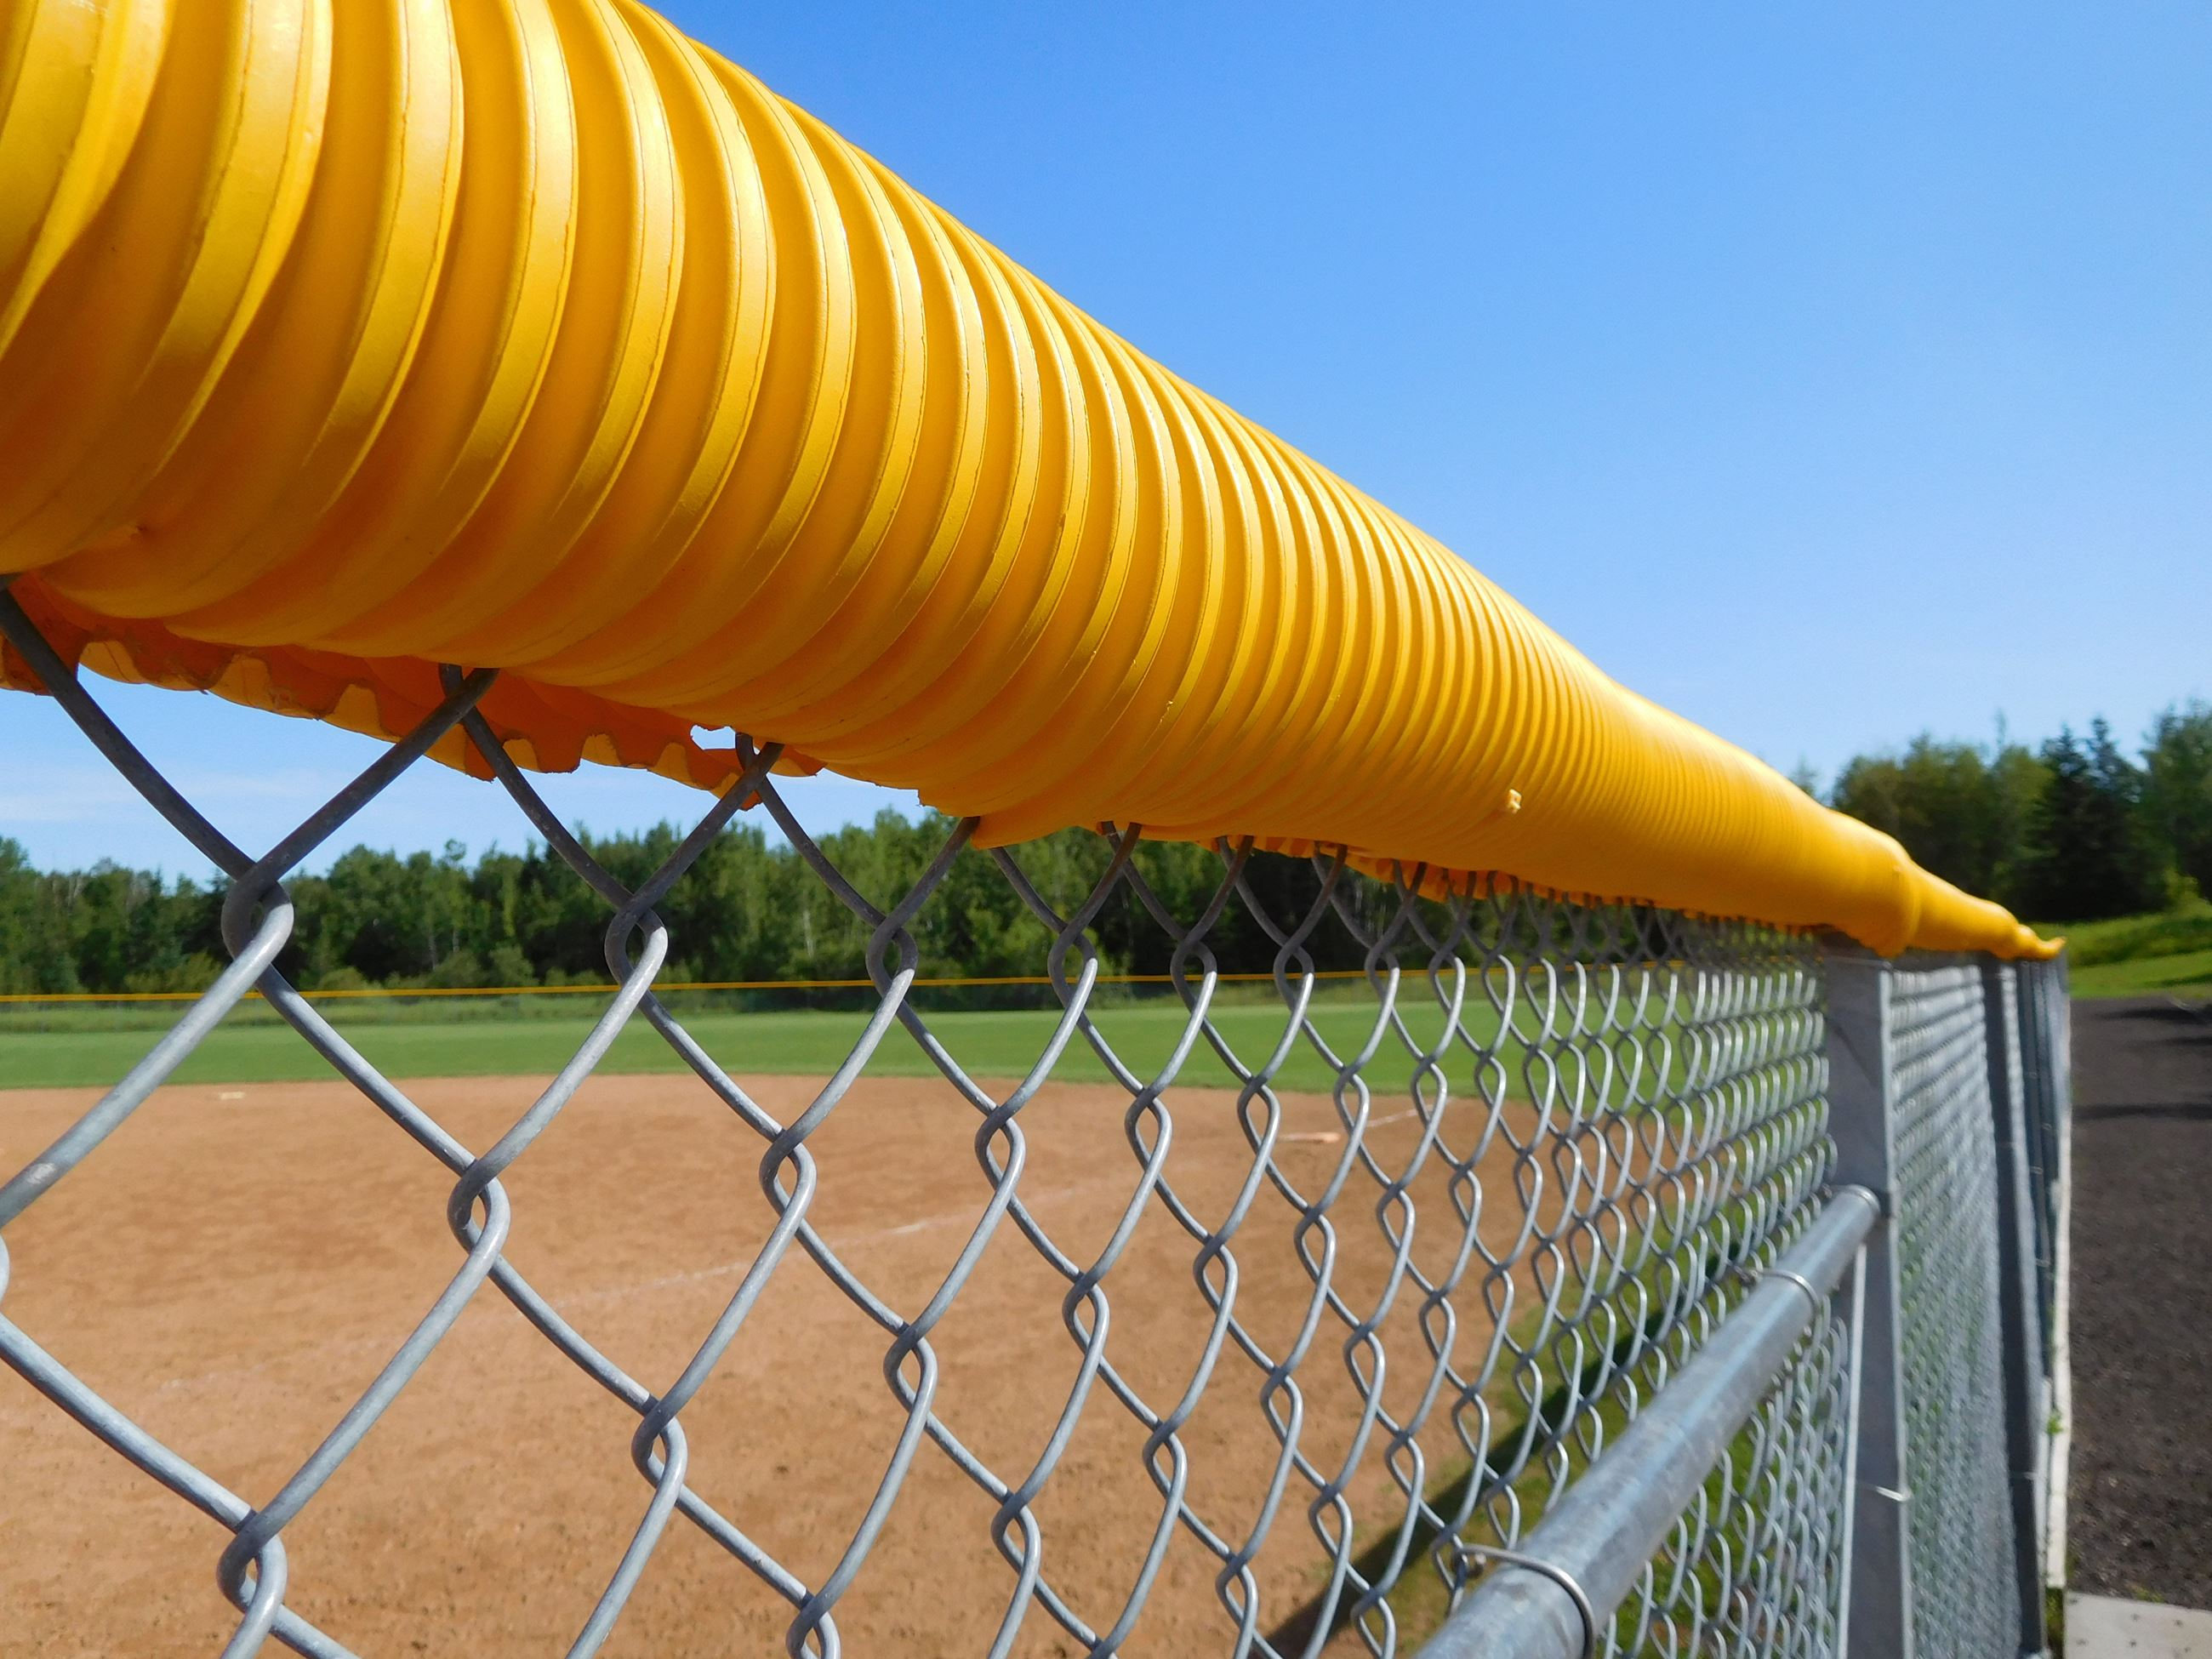 Itasca Memorial Ballfield fence with yellow cap